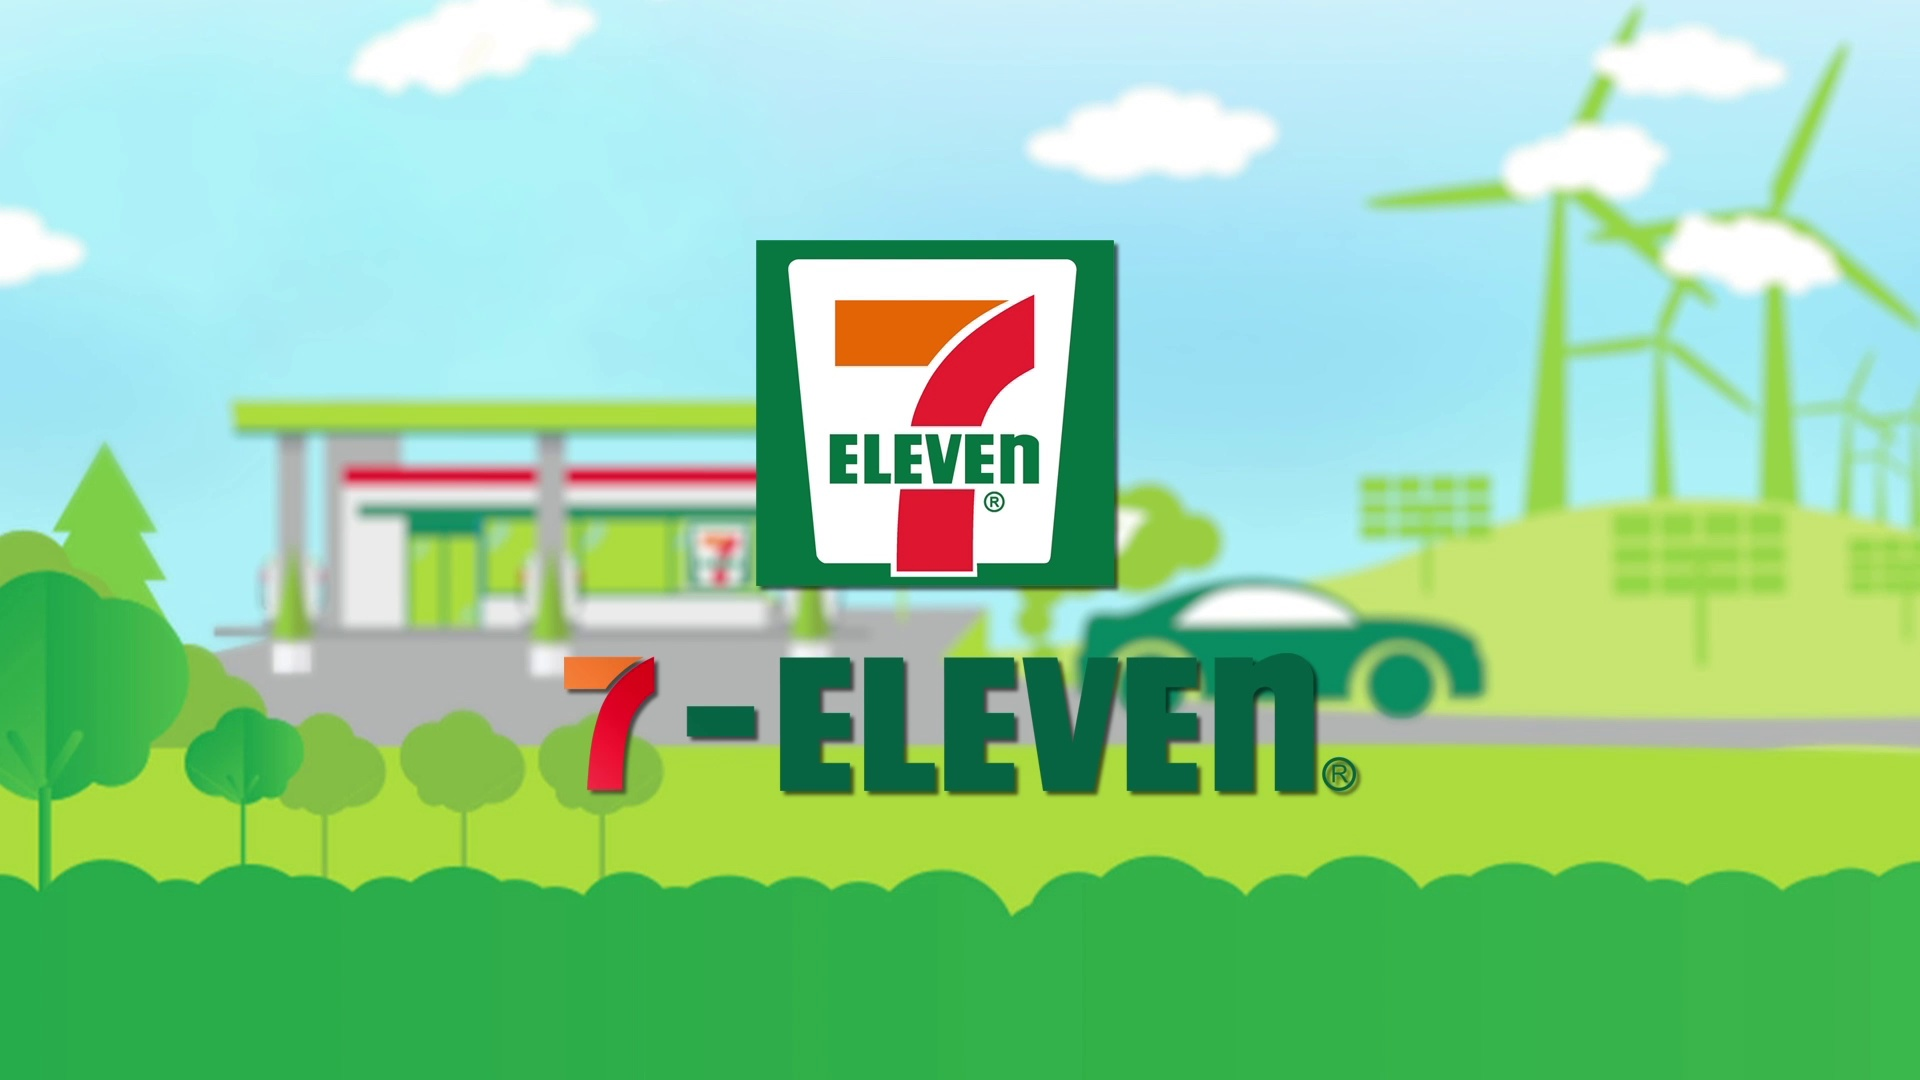 #31 7 Eleven Logo Plays With Cup of Coffee Parody